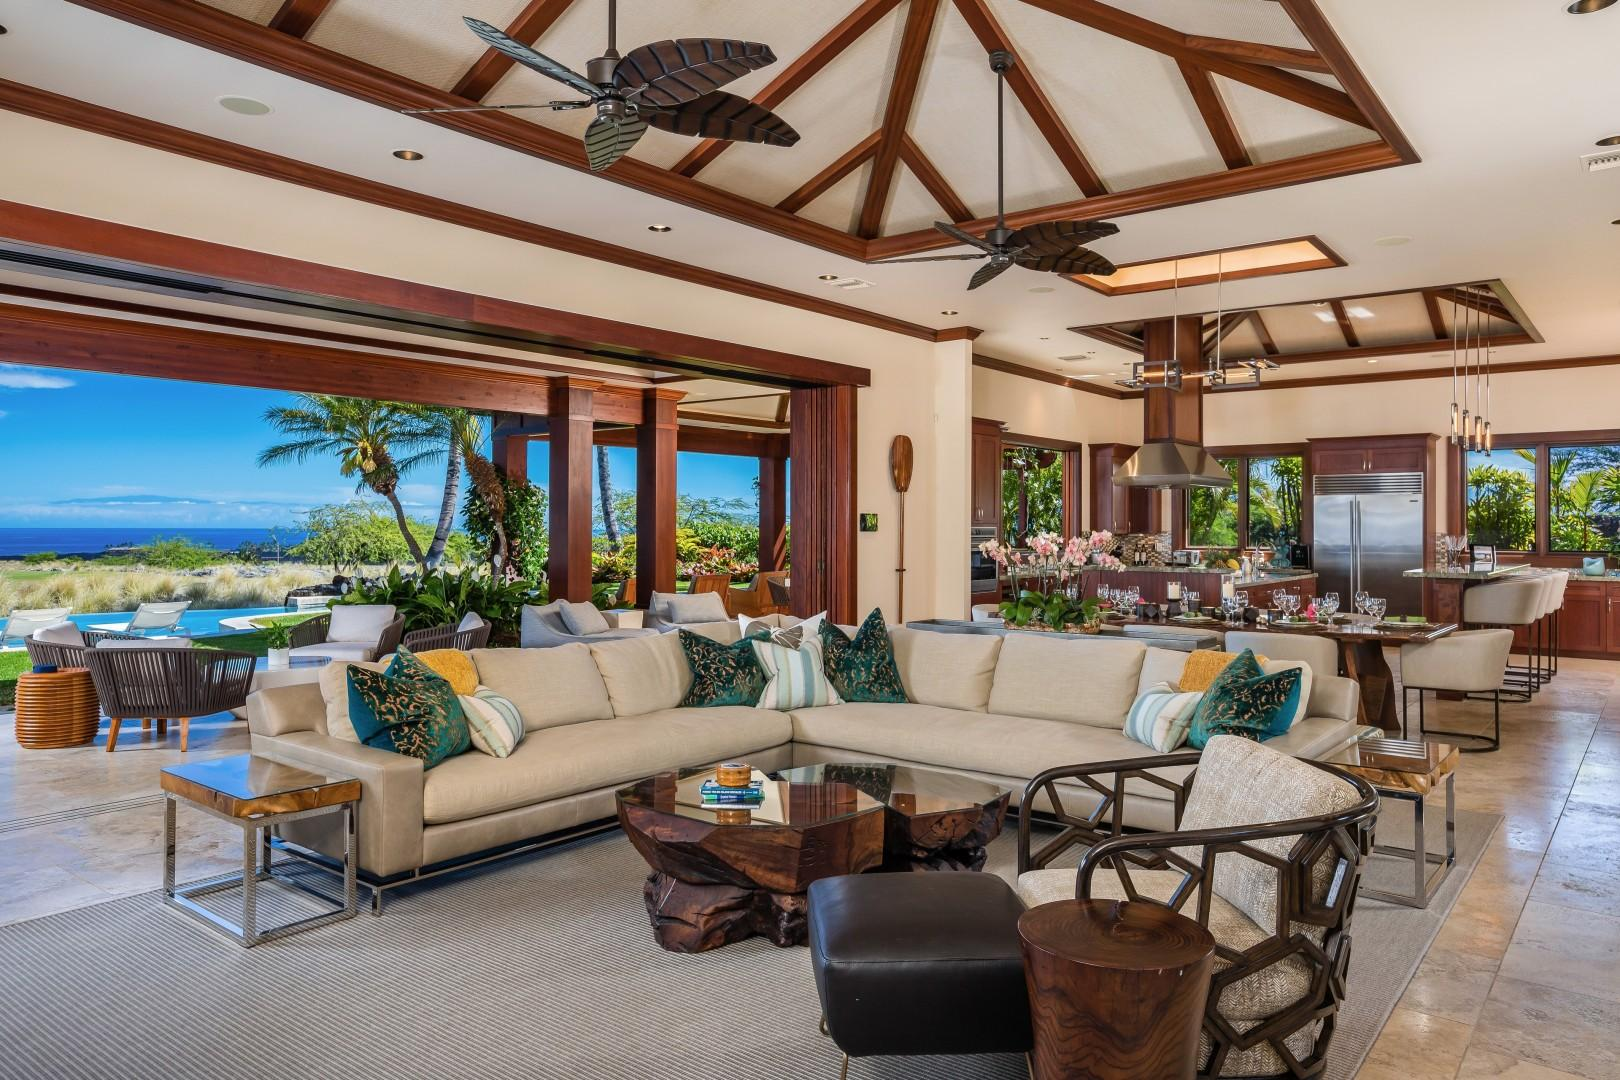 Spacious great room with vaulted ceilings and automated glass pocket doors to the lanai & pool deck, for luxurious Hawaiian indoor/outdoor living.